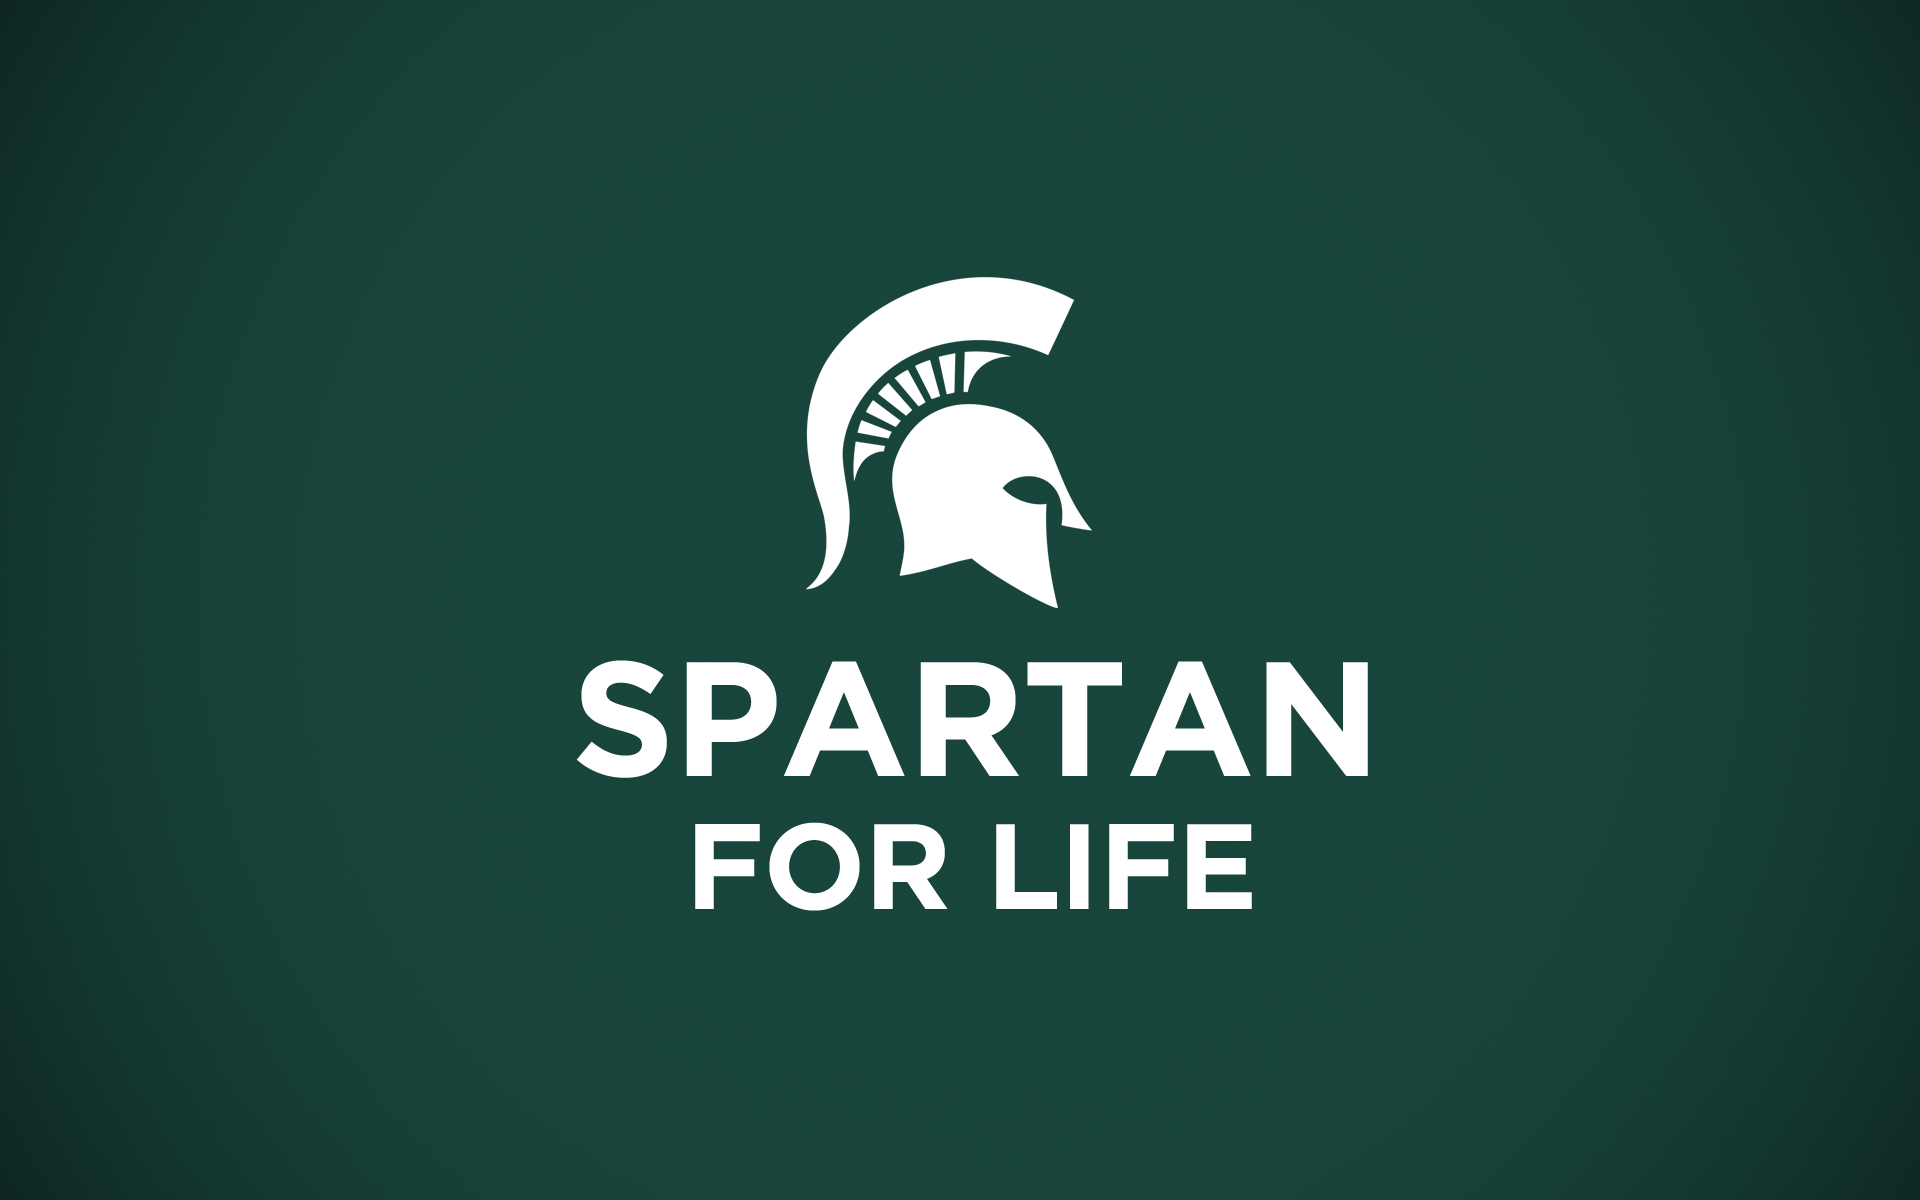 Spartan Logo Wallpaper Spartan Race Logo Wall...